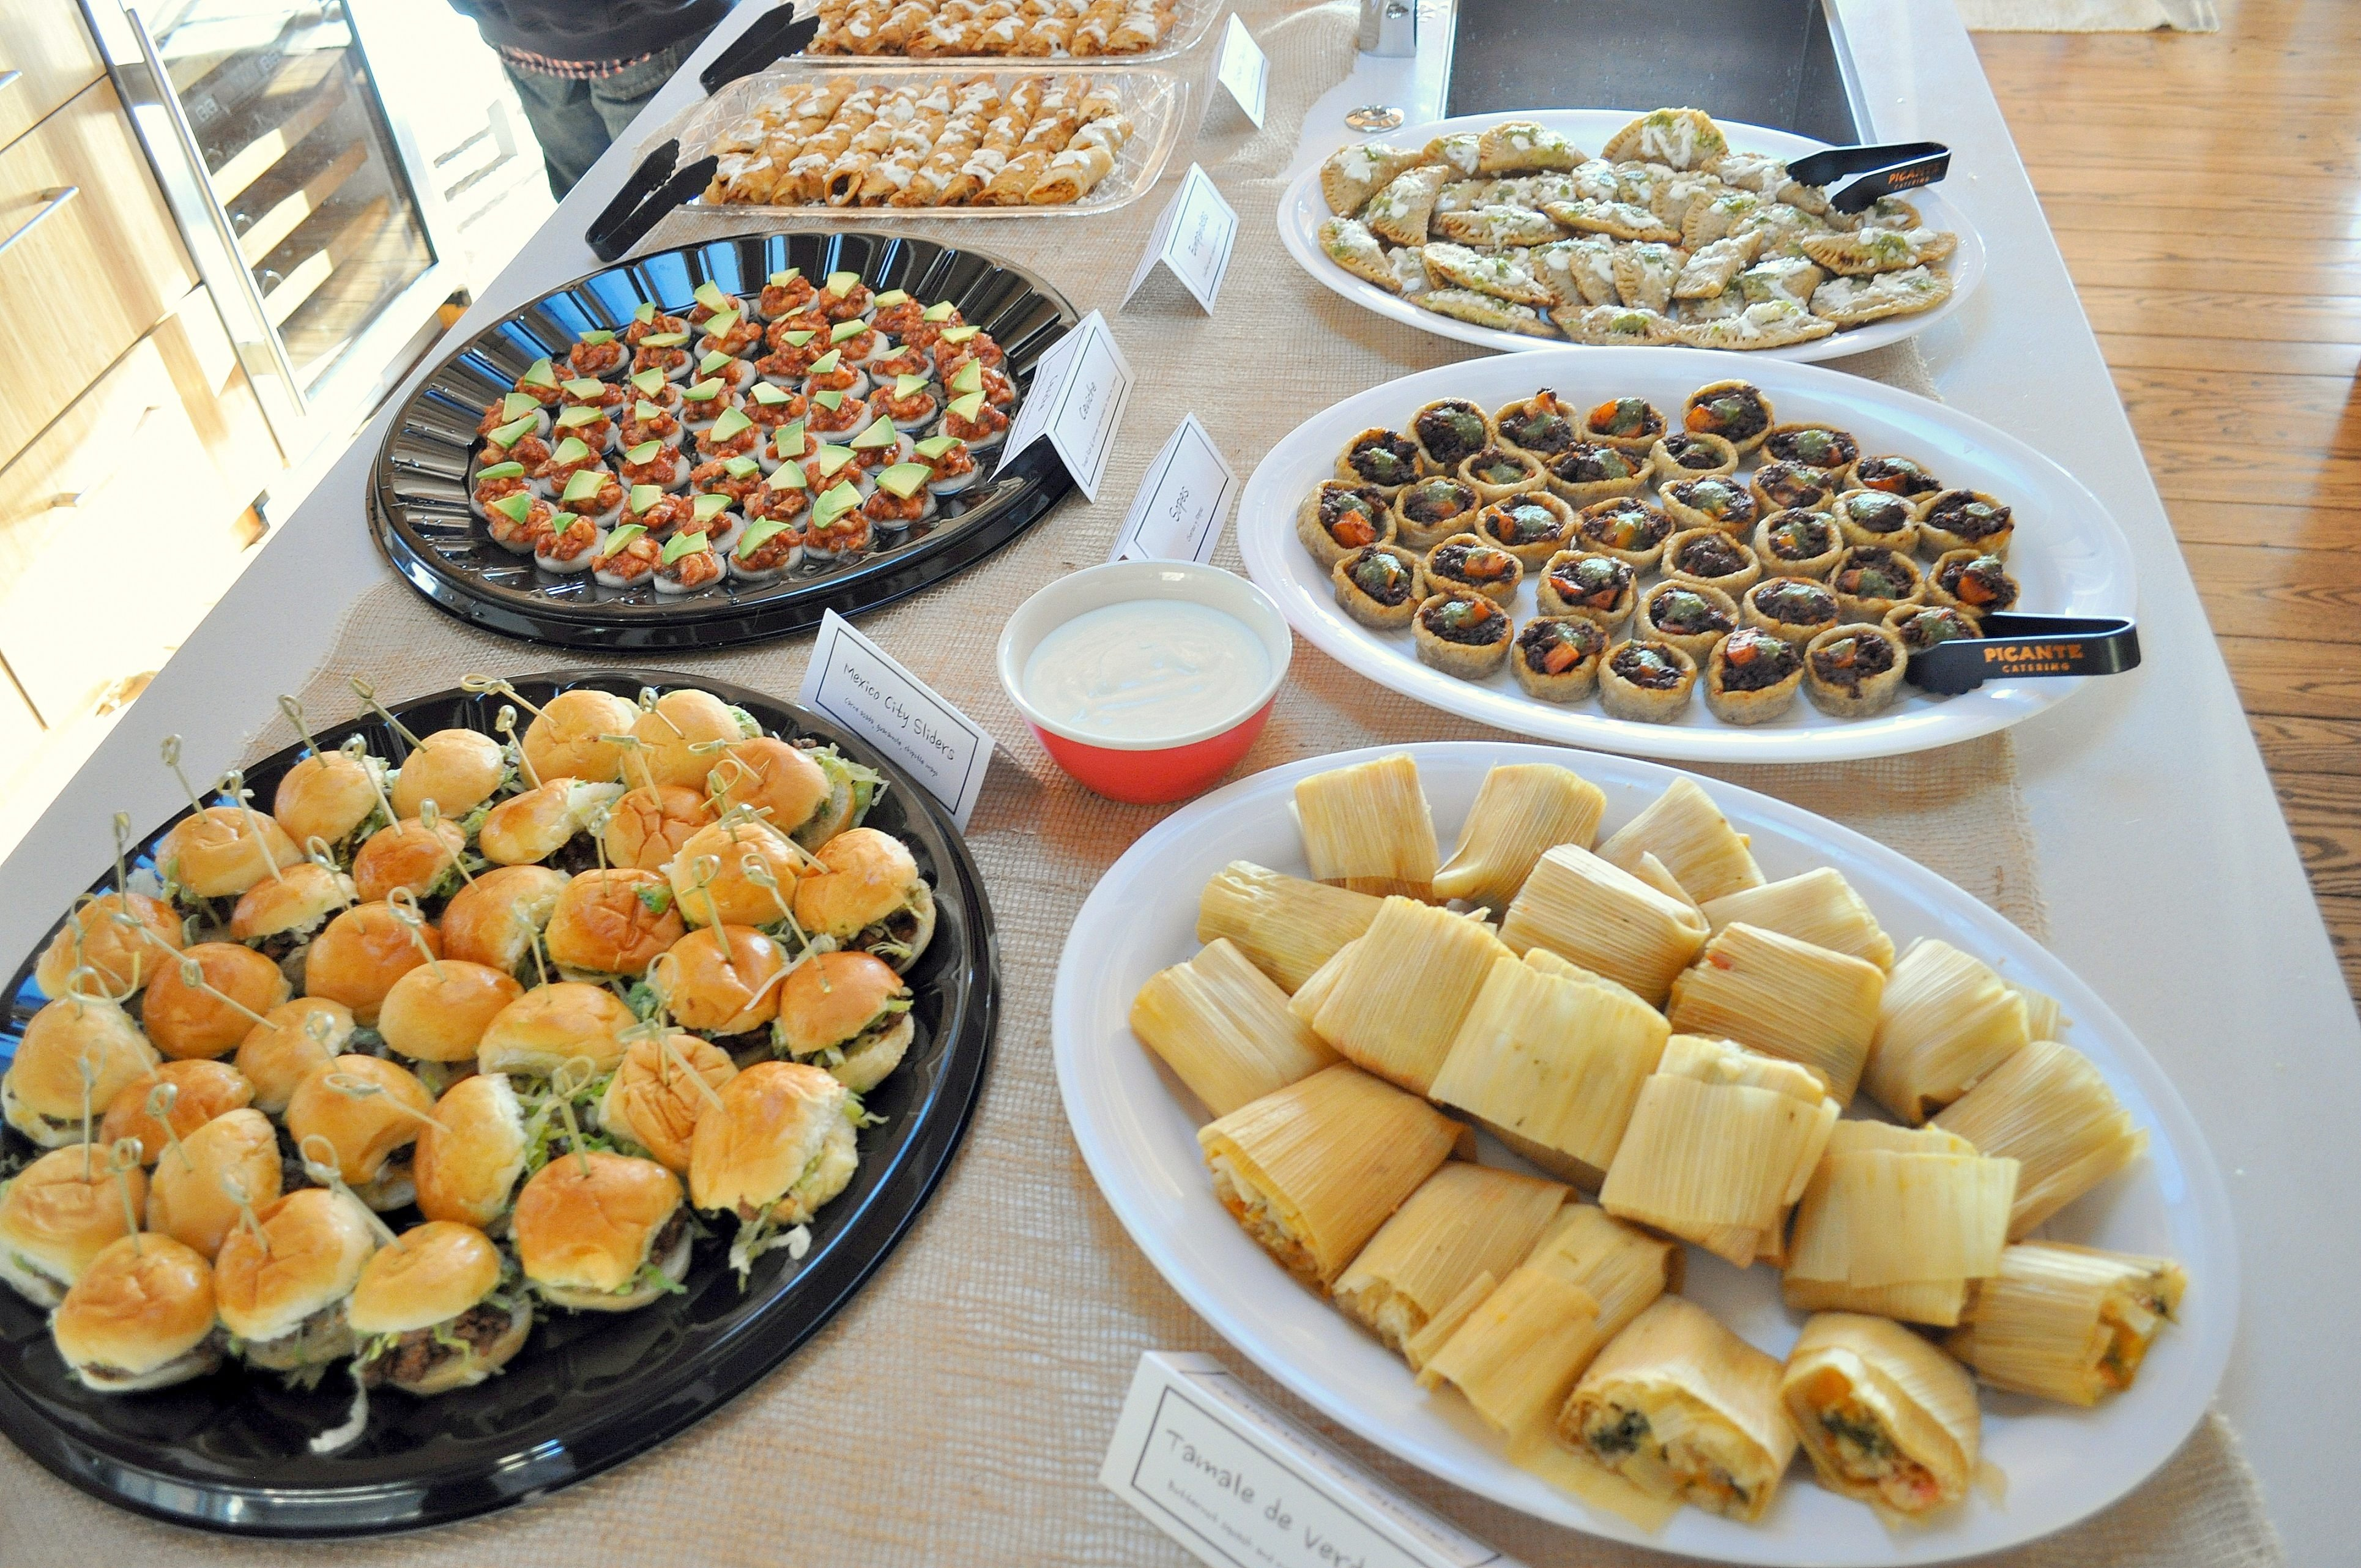 10 Ideal Baby Shower Menu Ideas On A Budget baby shower menu ideas on a budget baby food ideas for baby 2020